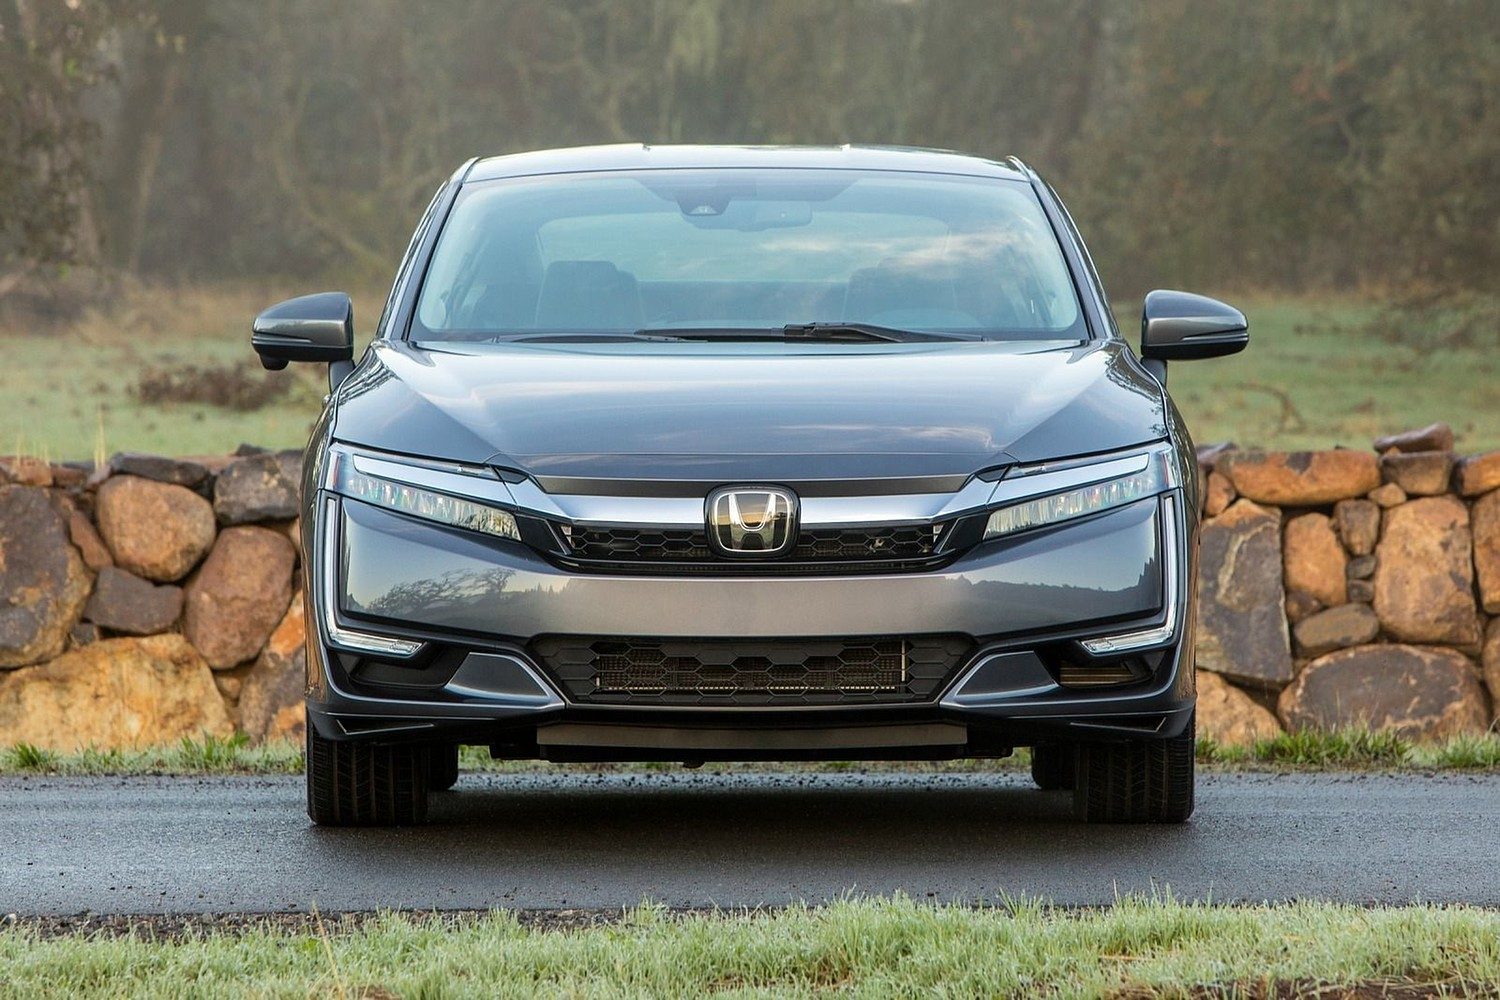 2018 Honda Clarity Touring Plug-In Hybrid Sedan Exterior